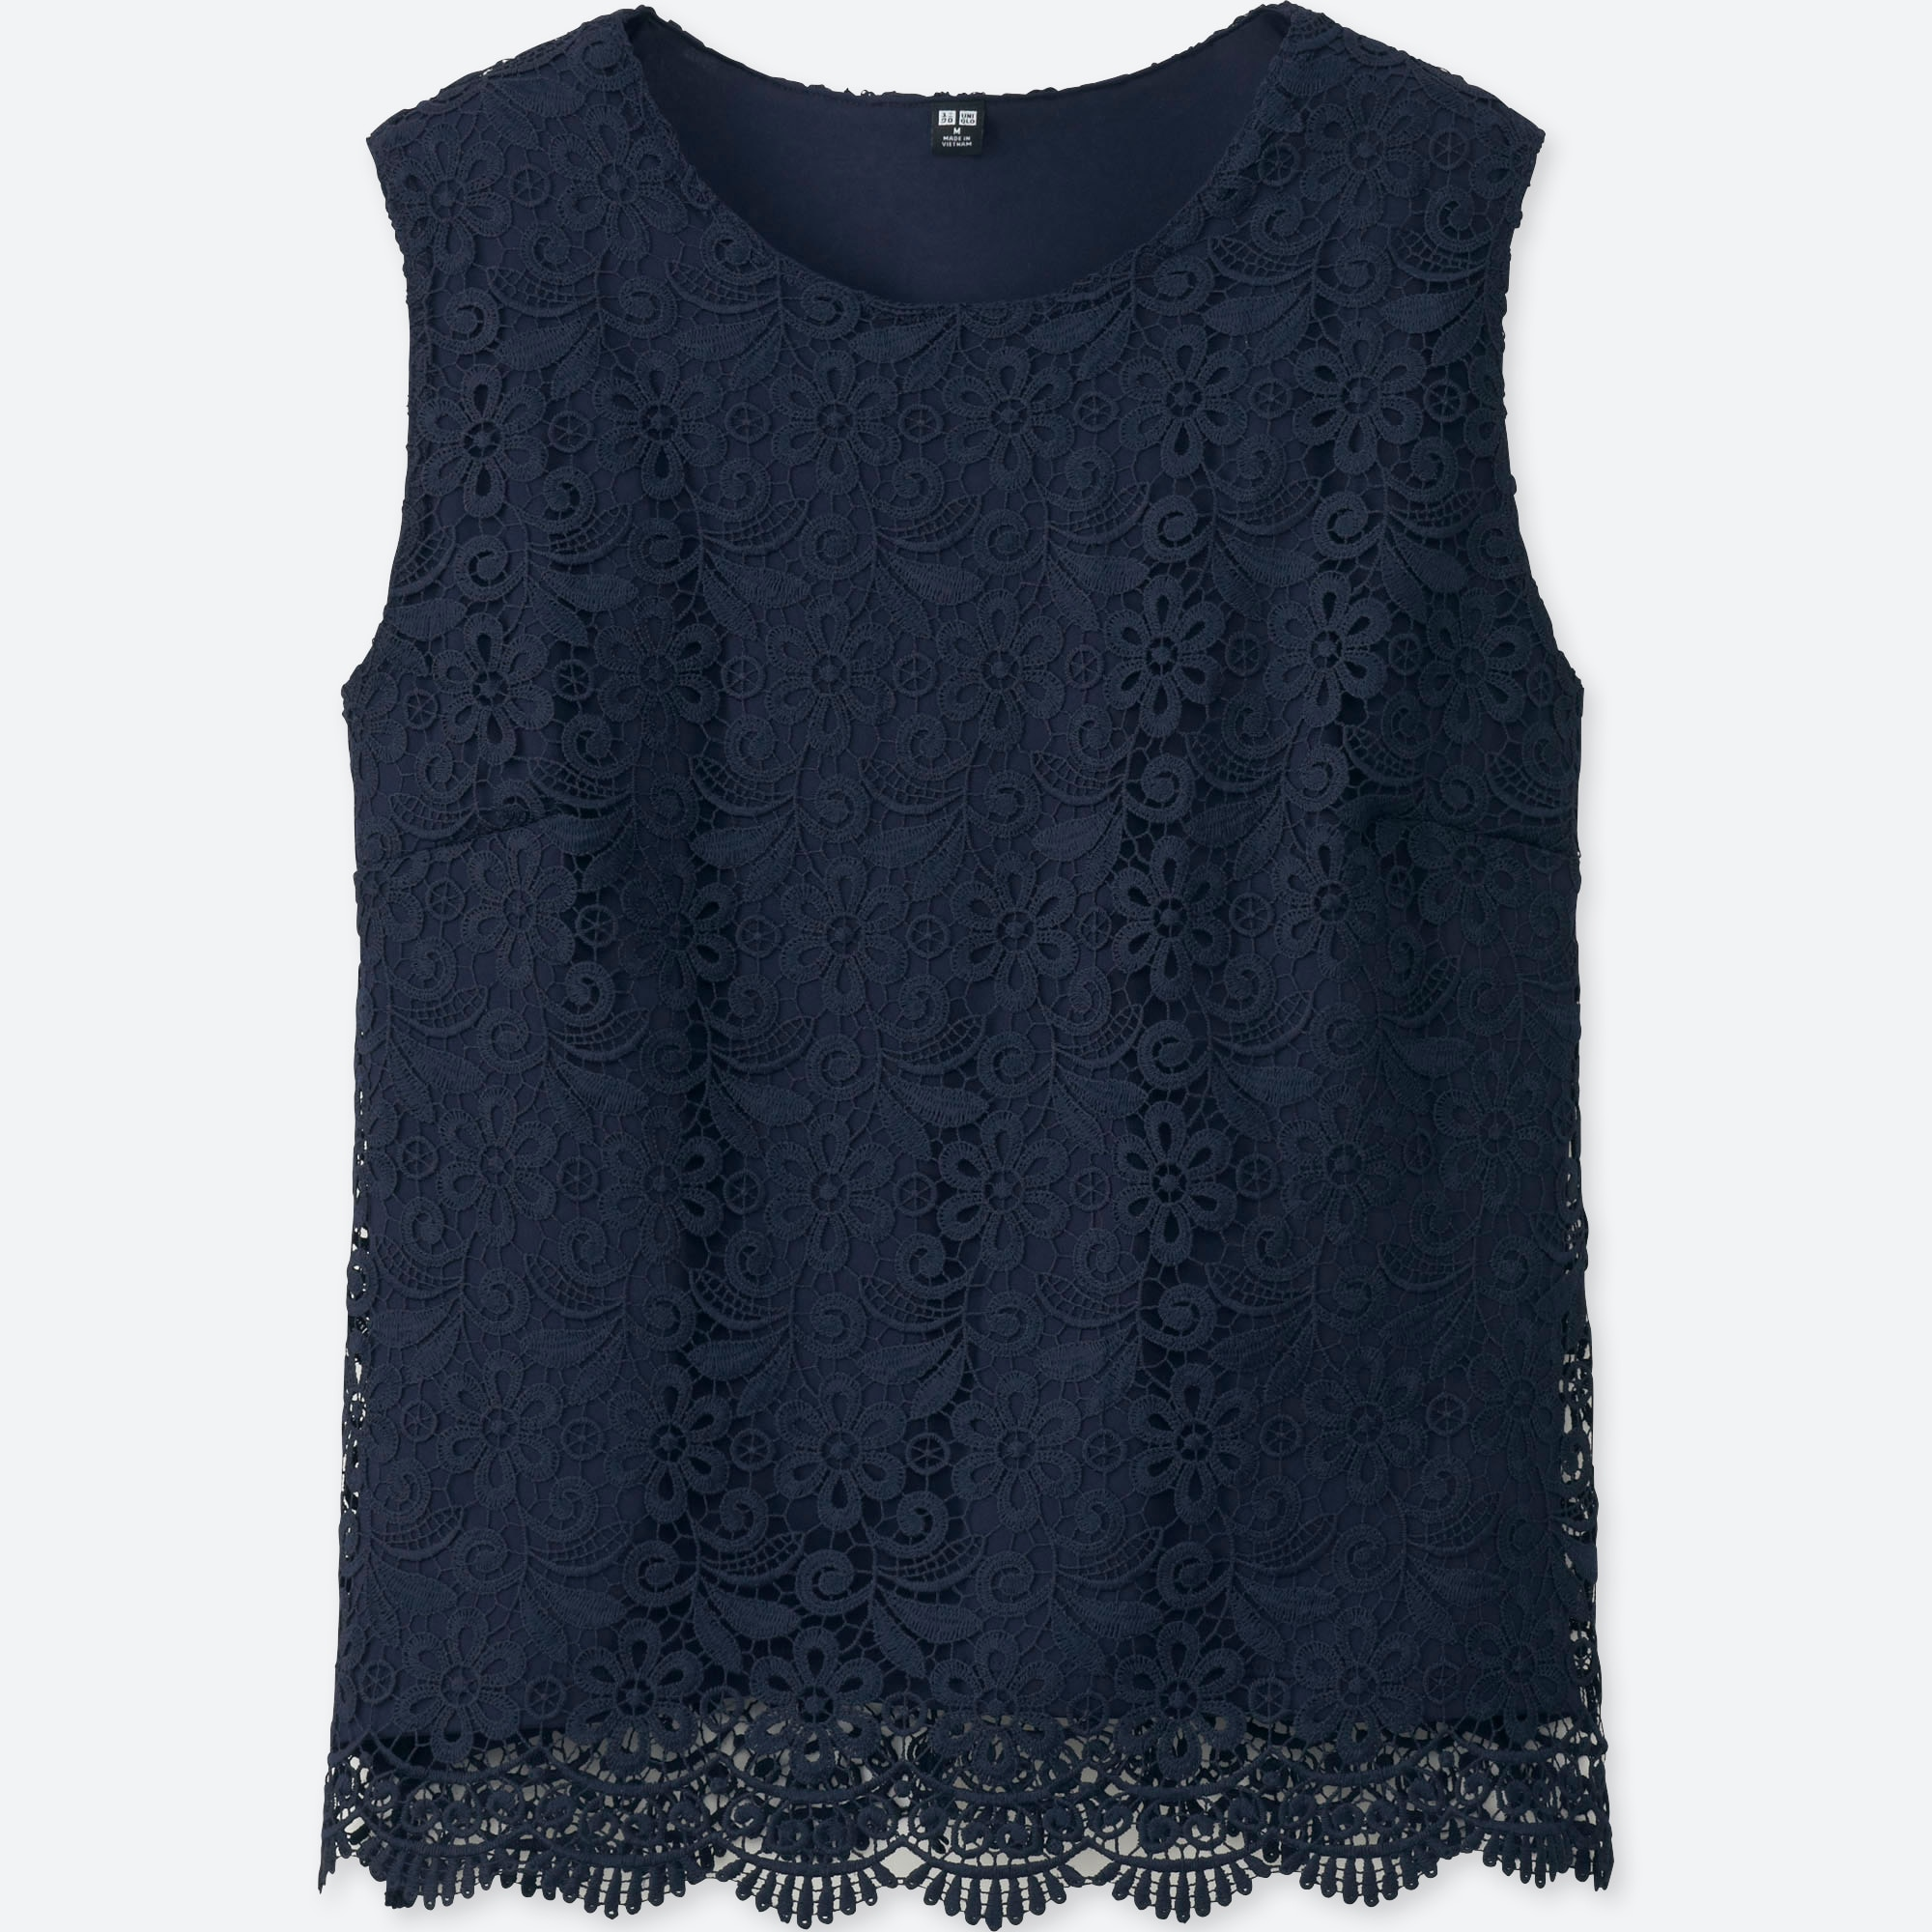 Womens Lace Short-Sleeve Shell Top Simply Be